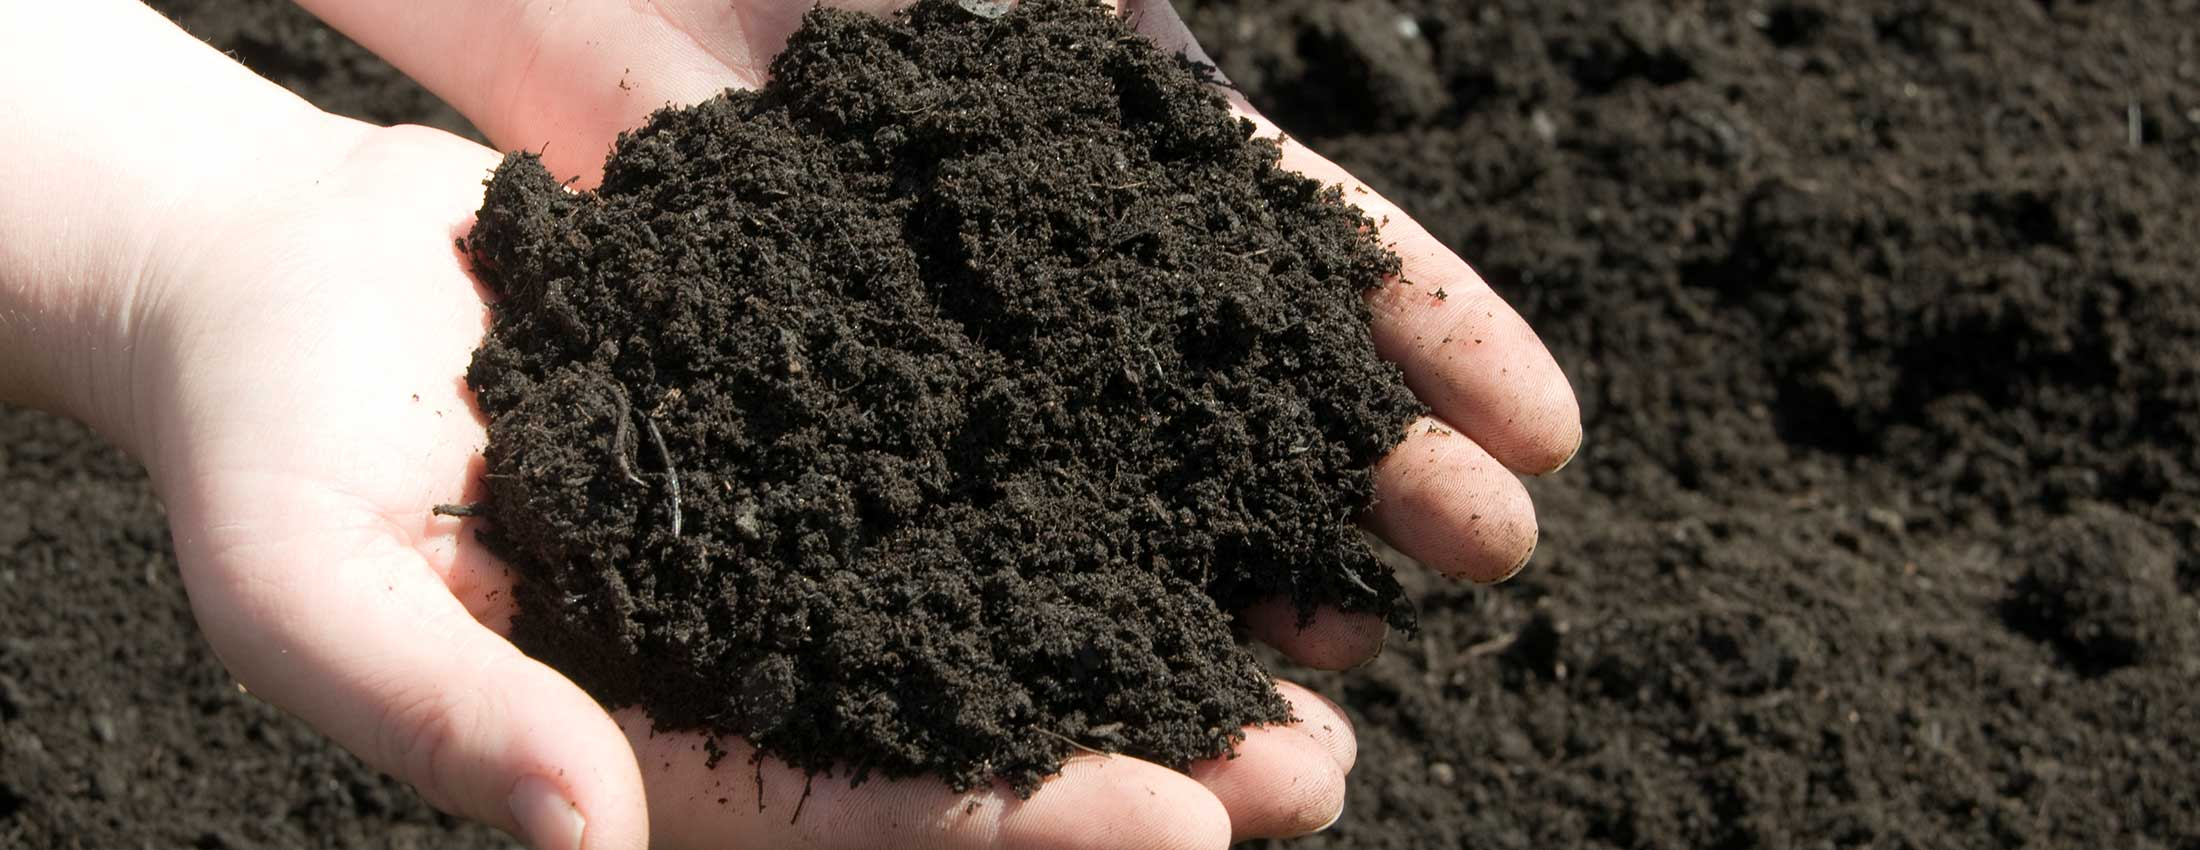 7 Reasons To  Purchase a Soil pH Meter